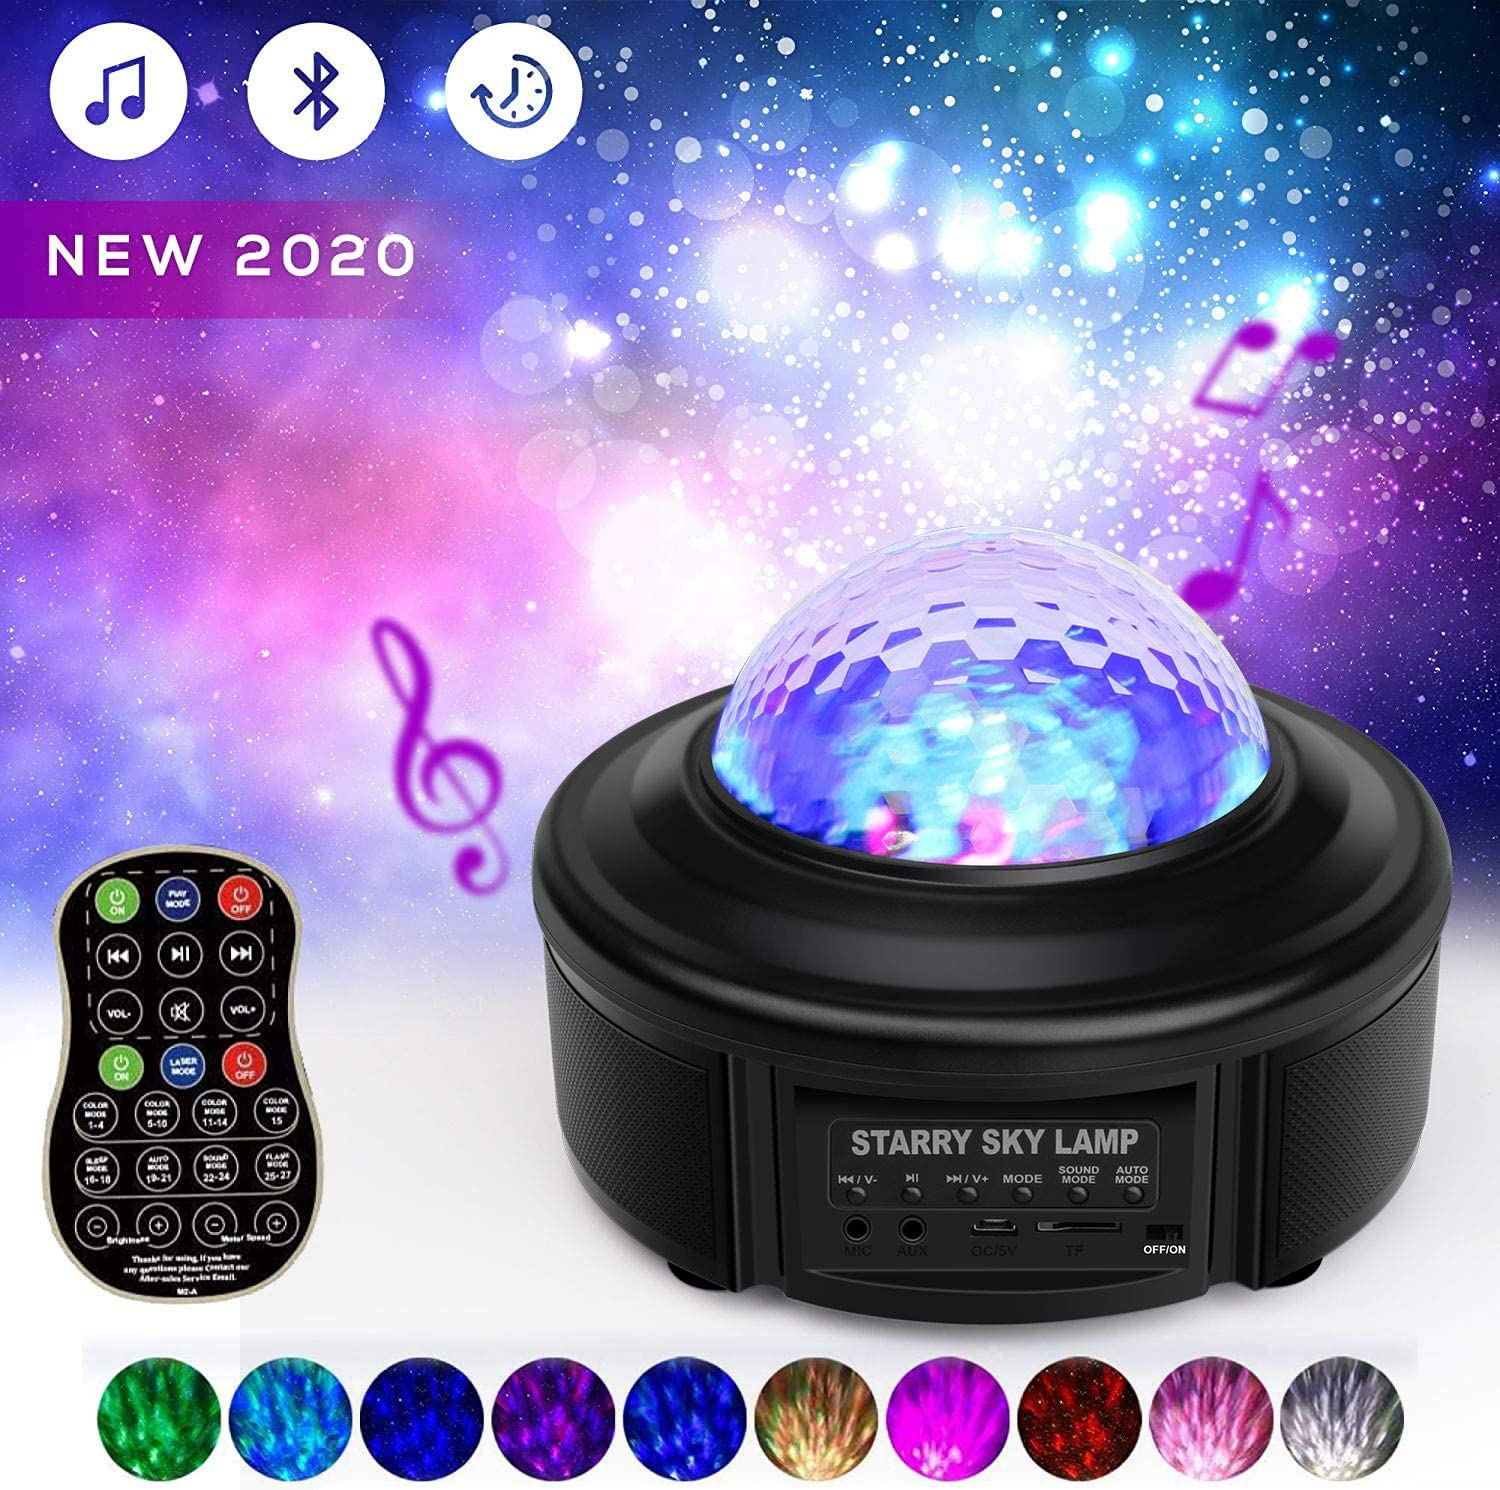 Star Projector Night Lights, Sky Lite Galaxy Projector Starlight Lamp Led Starry Sky Light/Stage Light, SPUHO Auto Timing Music Player Starry Light Projector for Kids Bedroom Adults Party Deco Gifts